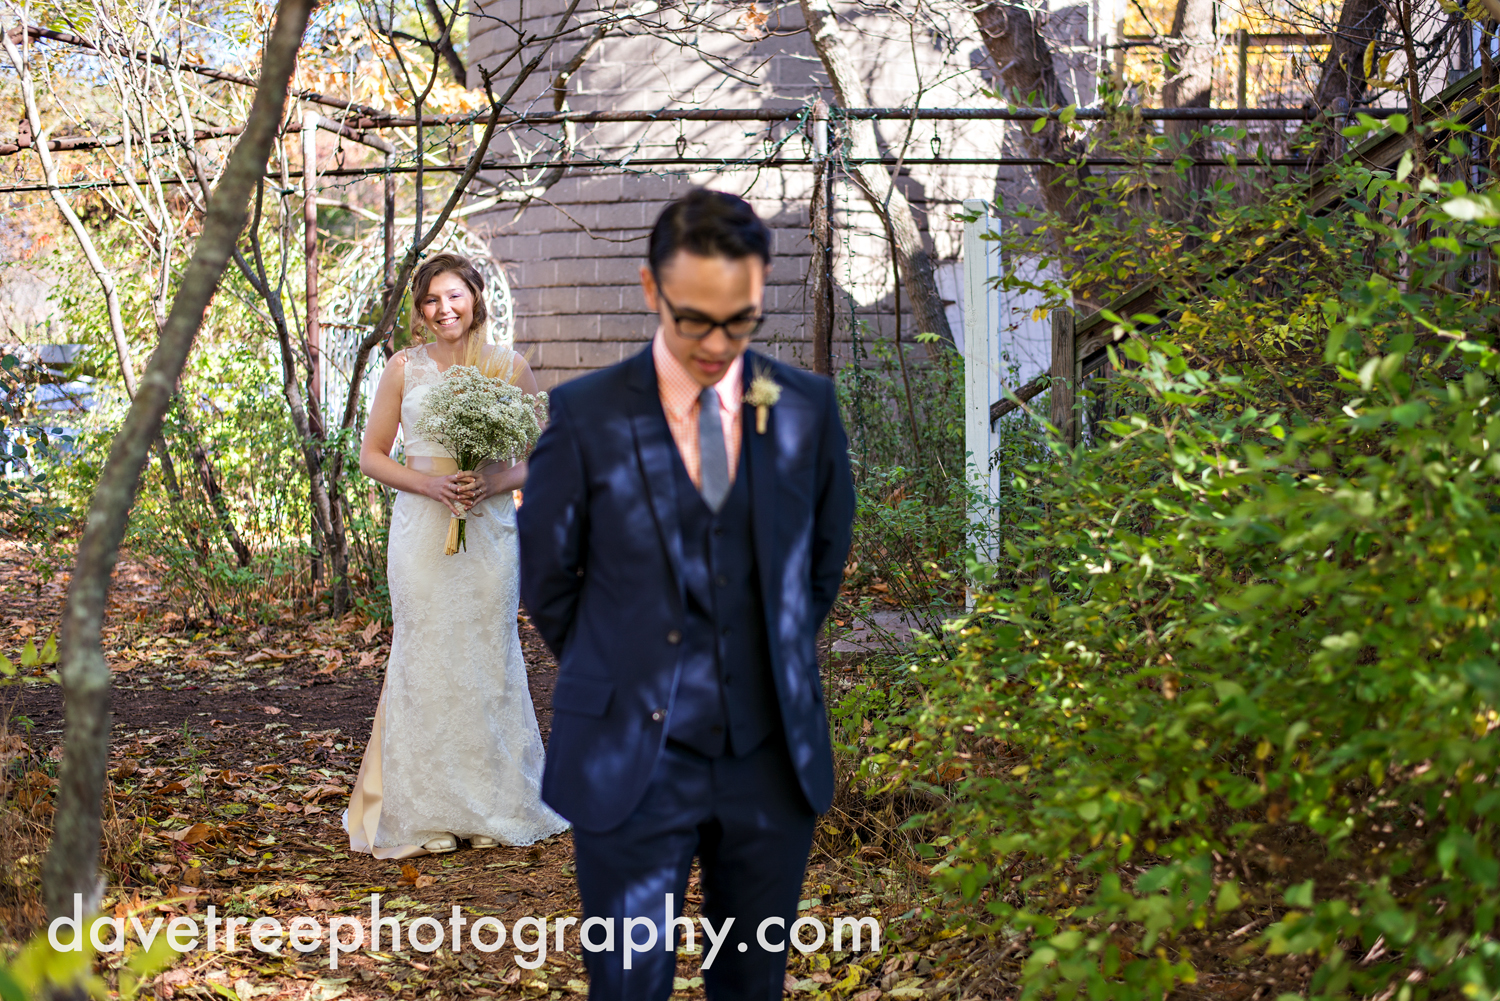 benton_harbor_wedding_photographer_blue_dress_barn_130.jpg